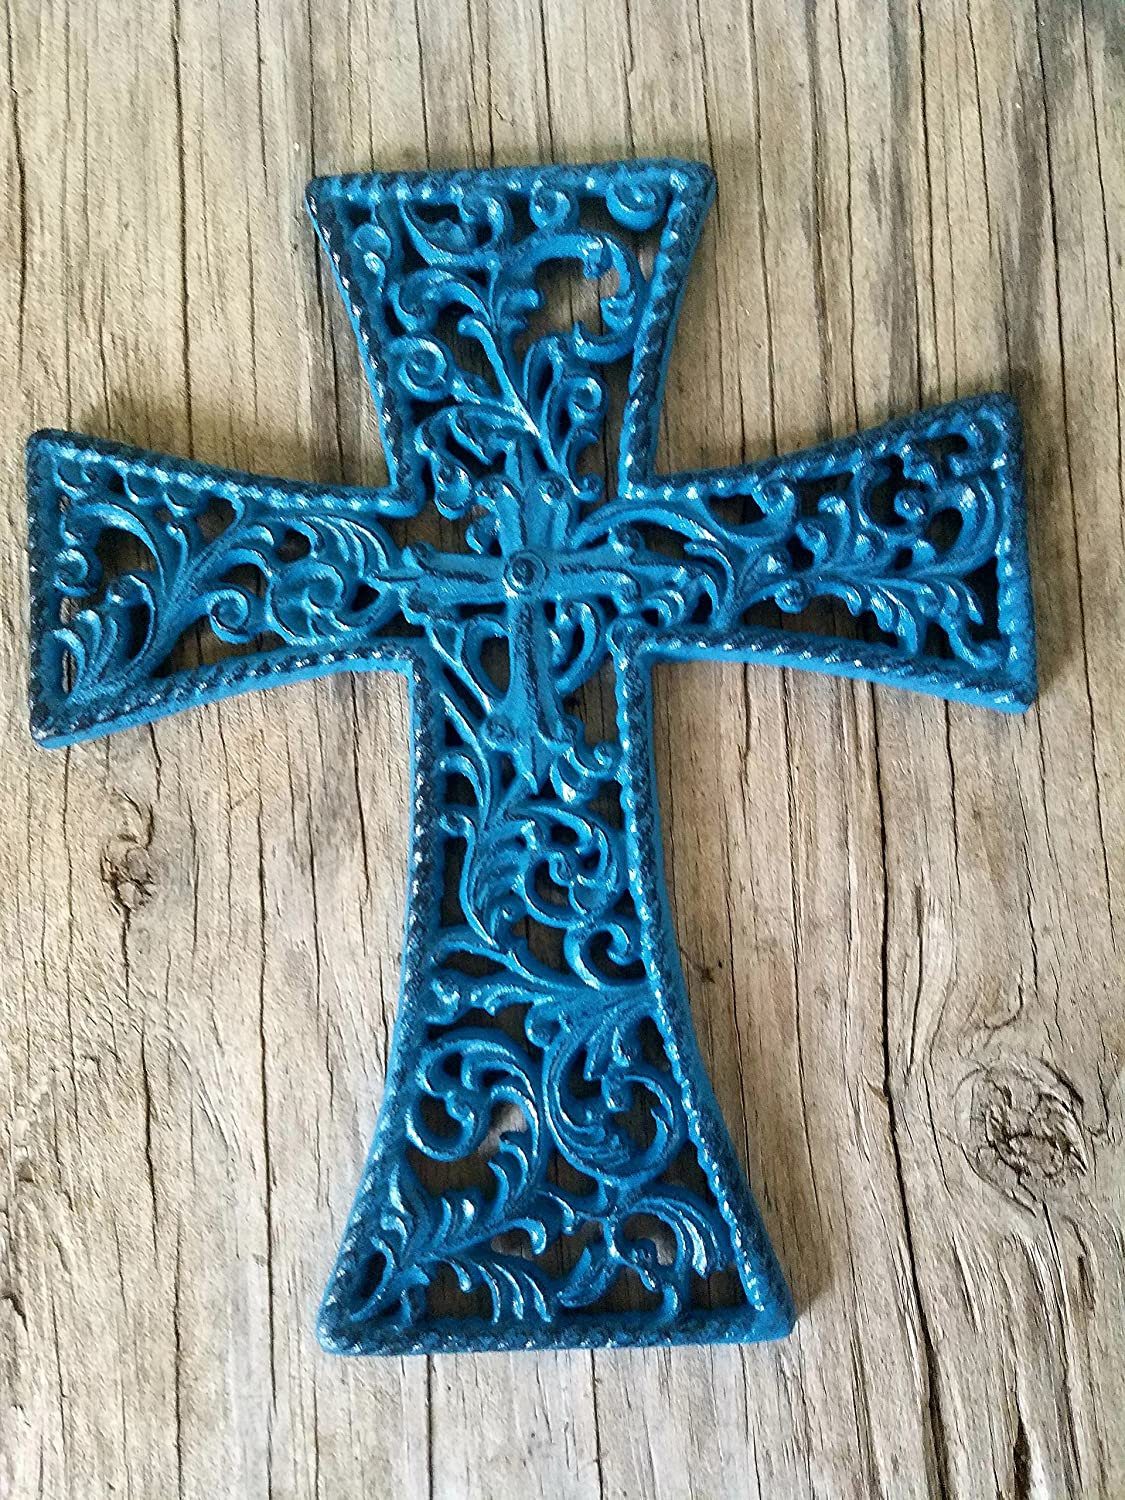 DECORATIVE BLUE AND BLACK CAST IRON WALL CROSS HANGING – RELIGIOUS INSPIRATIONAL – HOUSEWARMING GIFT